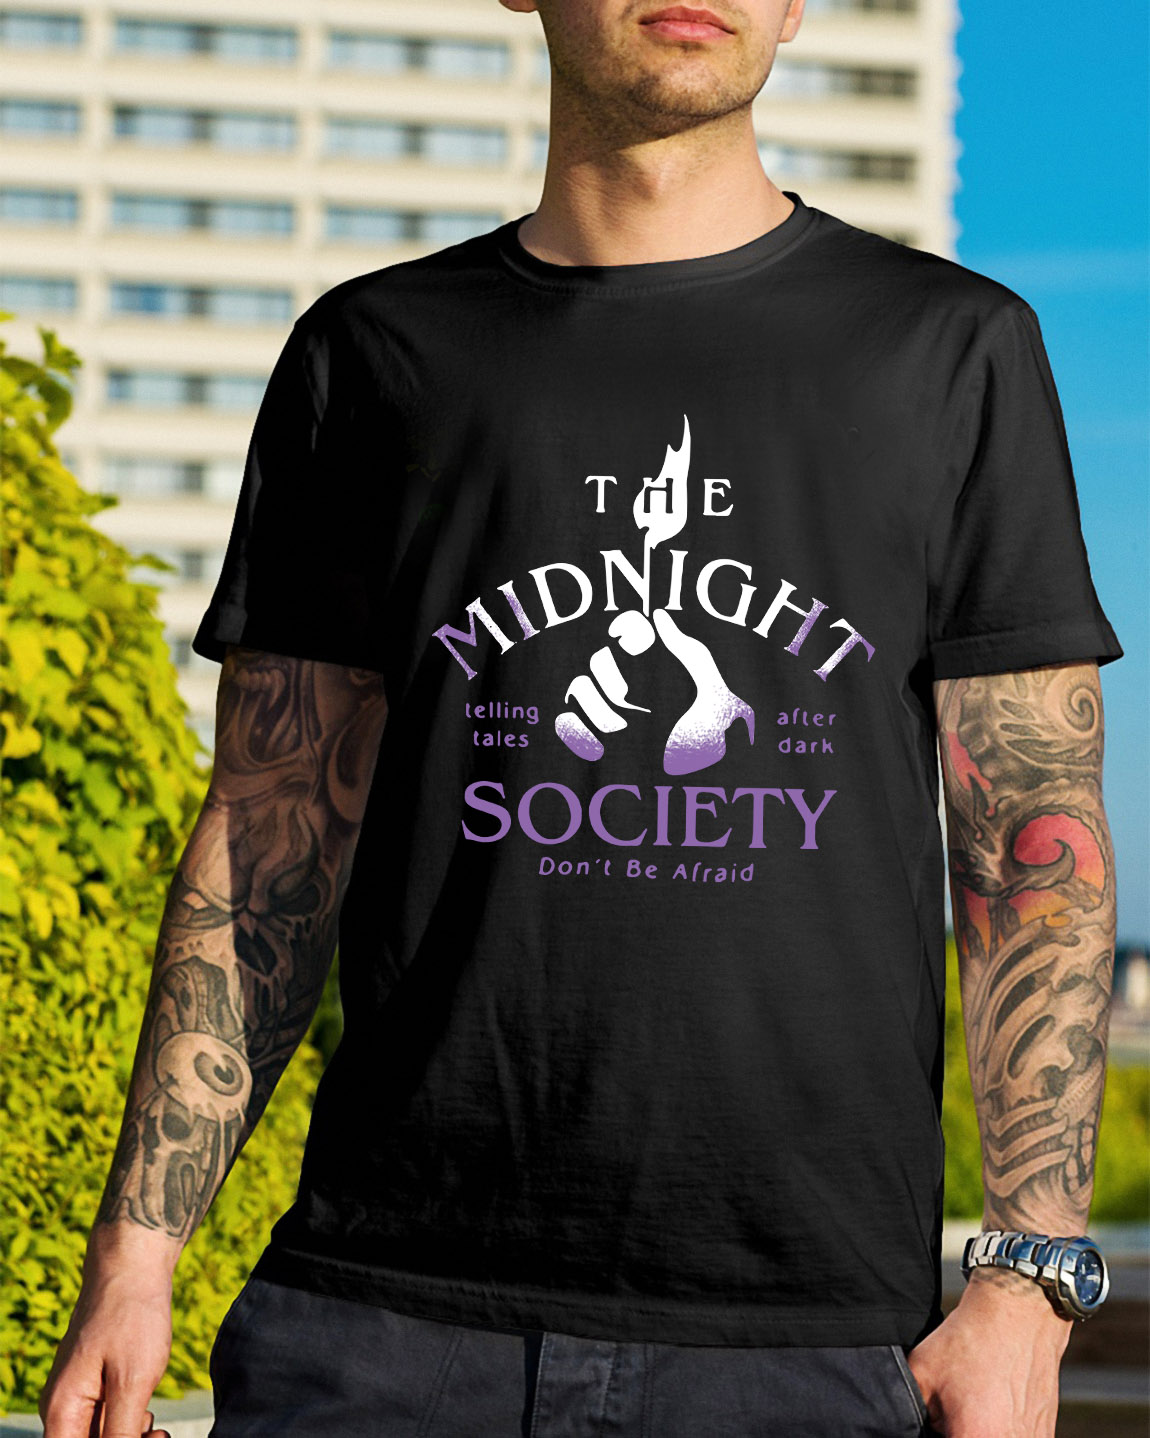 93f6f9404 The midnight telling tales after dark society don't be afraid shirt ...